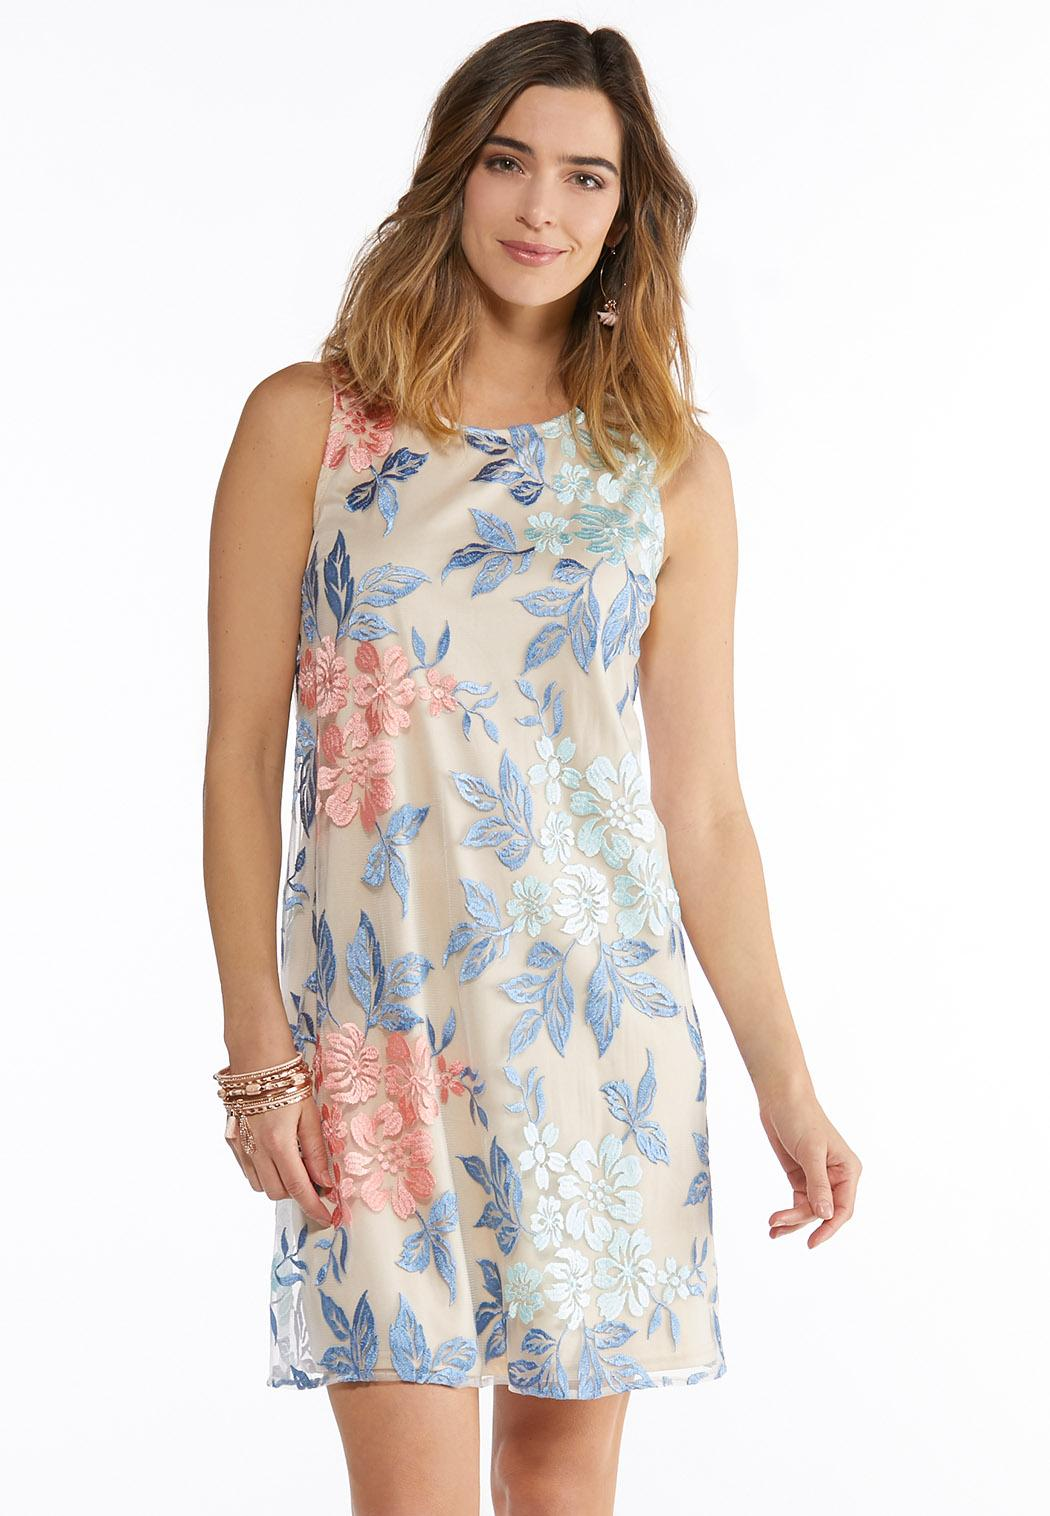 Plus Size Floral Embroidered Swing Dress A-line & Swing Cato Fashions